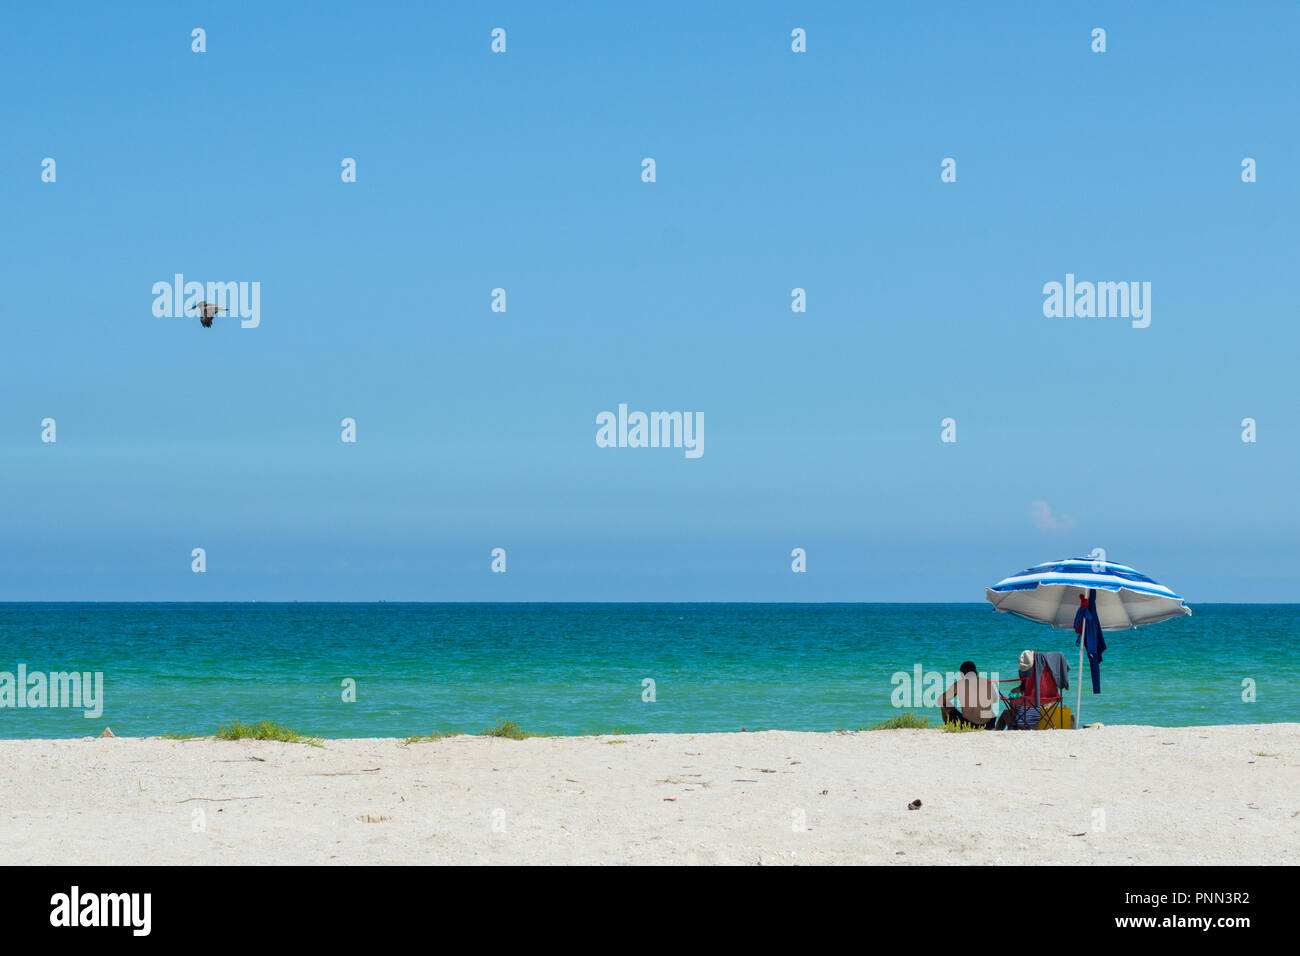 Couple under an colourful beach umbrella enjoying a day out on the beach of Chuburna, Yucatan, Mexico. Turquoise waters, calm sea. white sand. - Stock Image